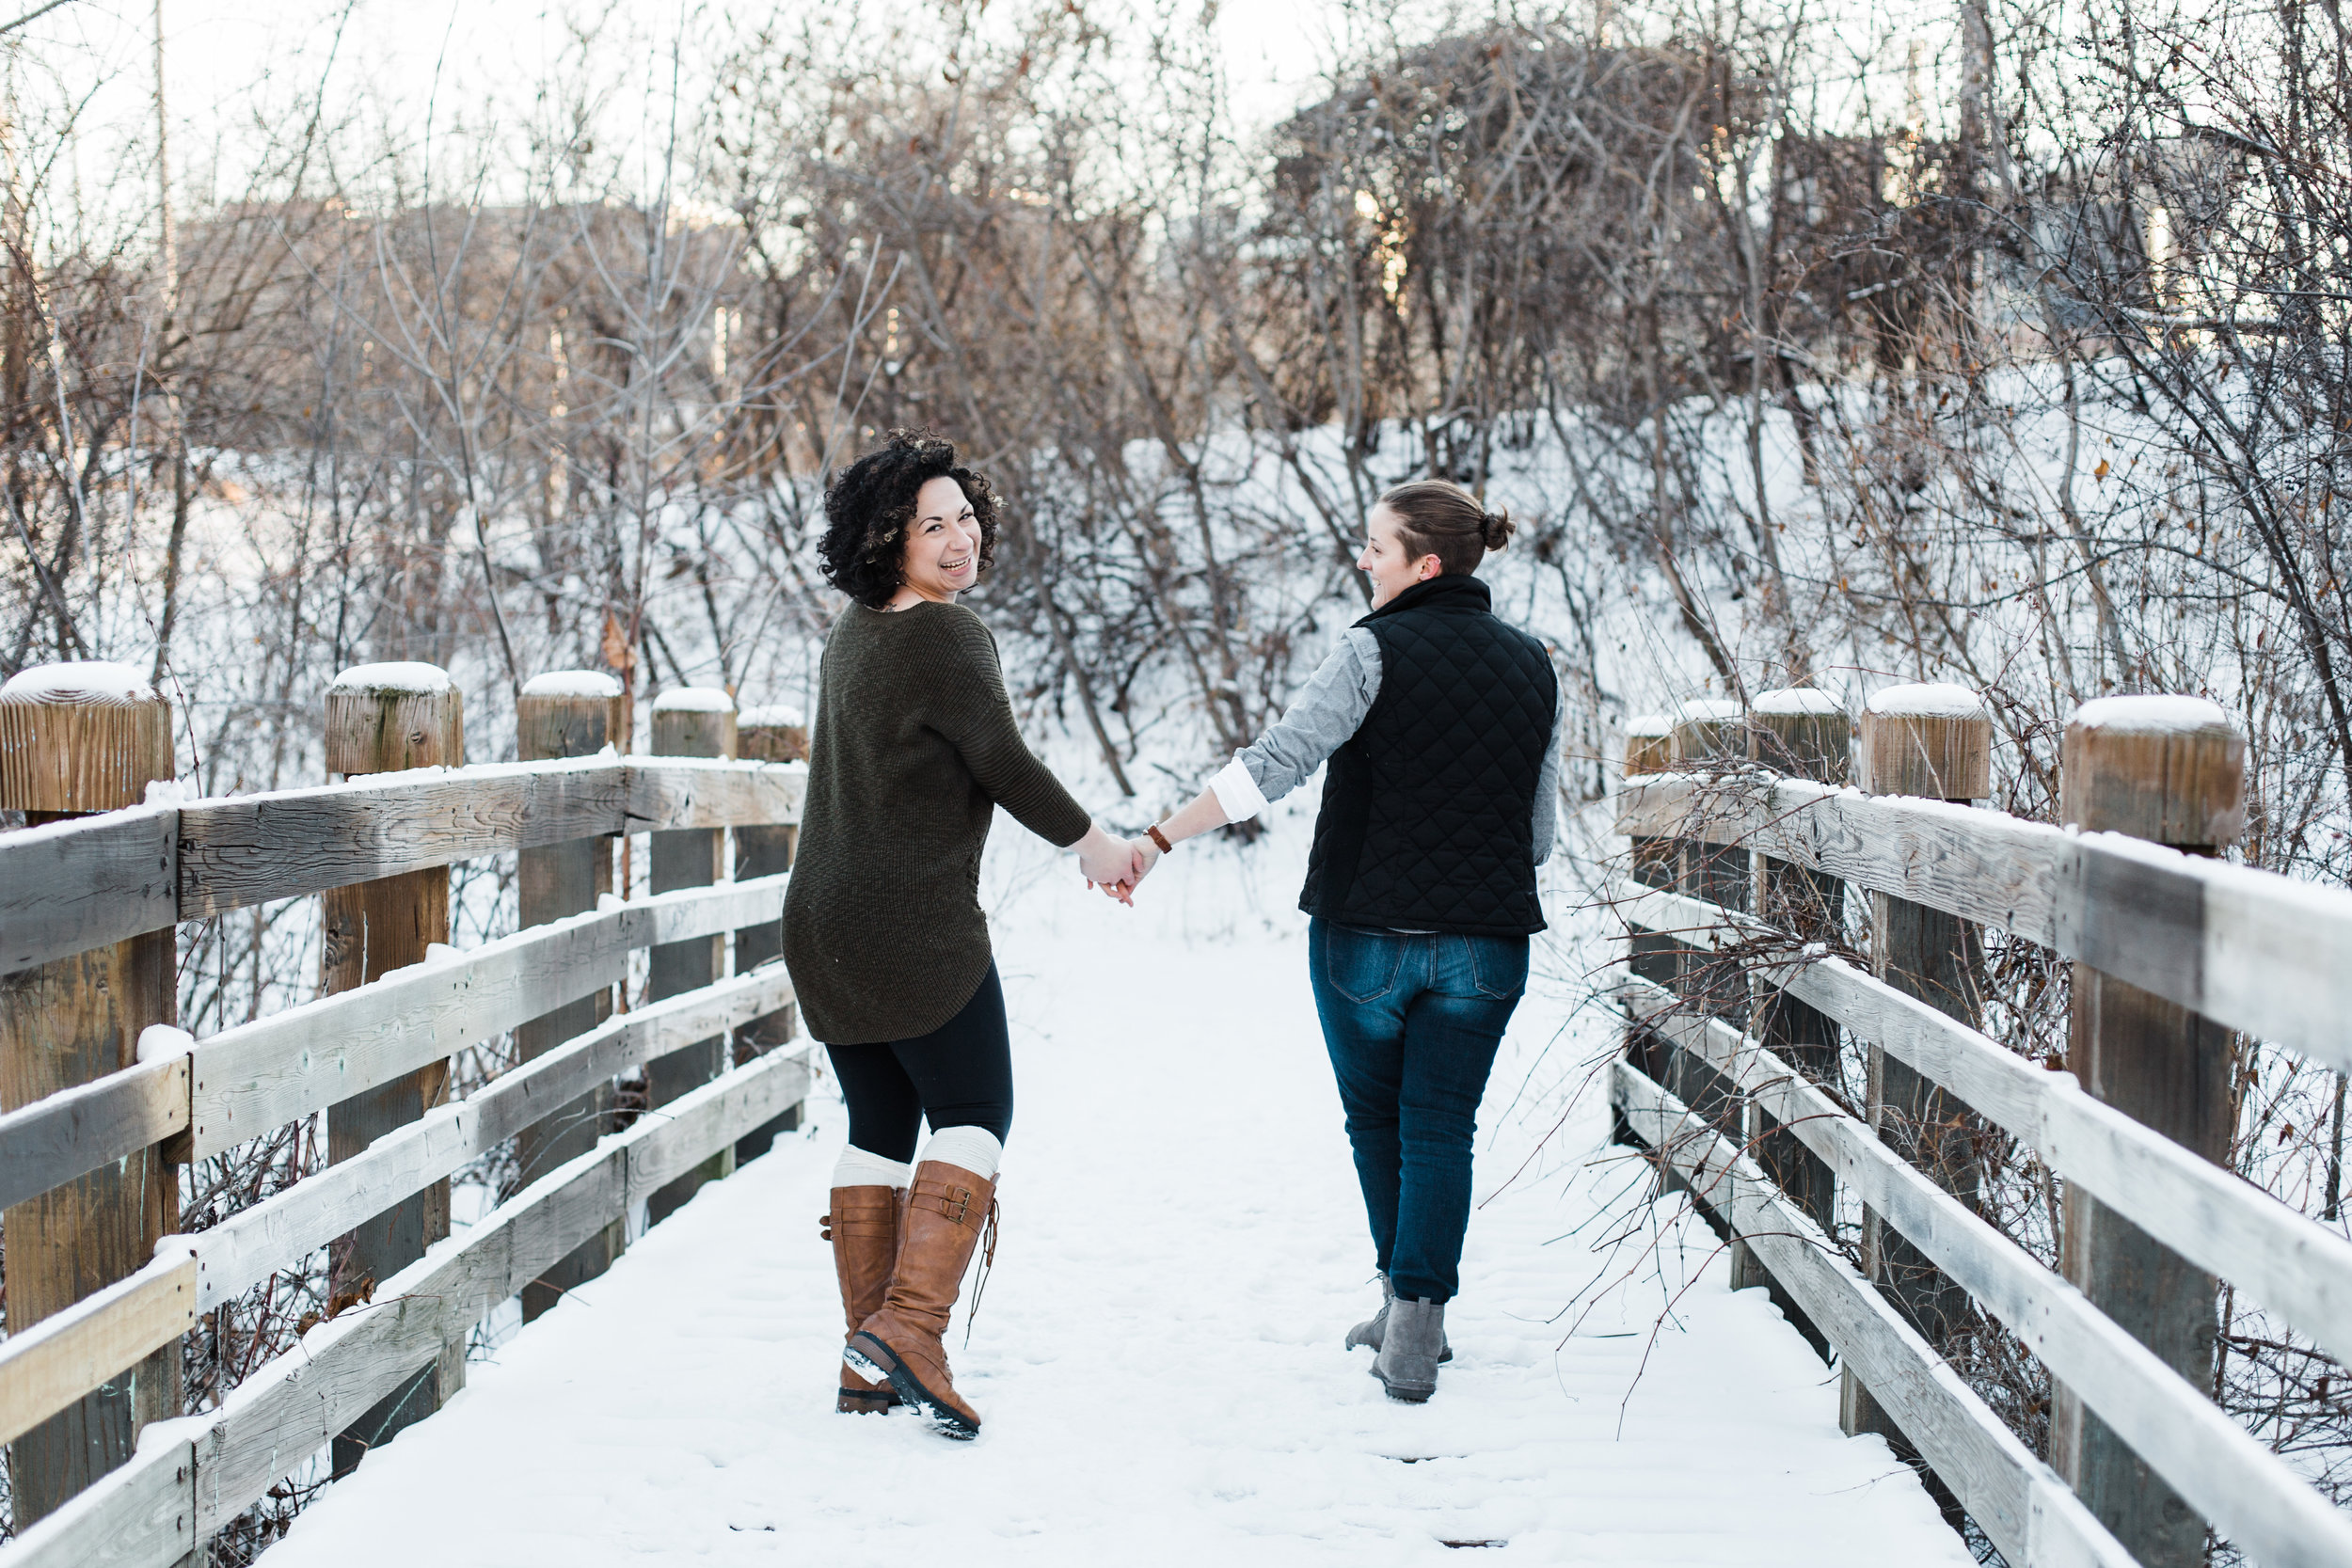 Winter engagement photos, winter bridge engagement photo, LGBTQ engagement photos, fun engagement photos, engagement session inspiration, snowy engagement photos